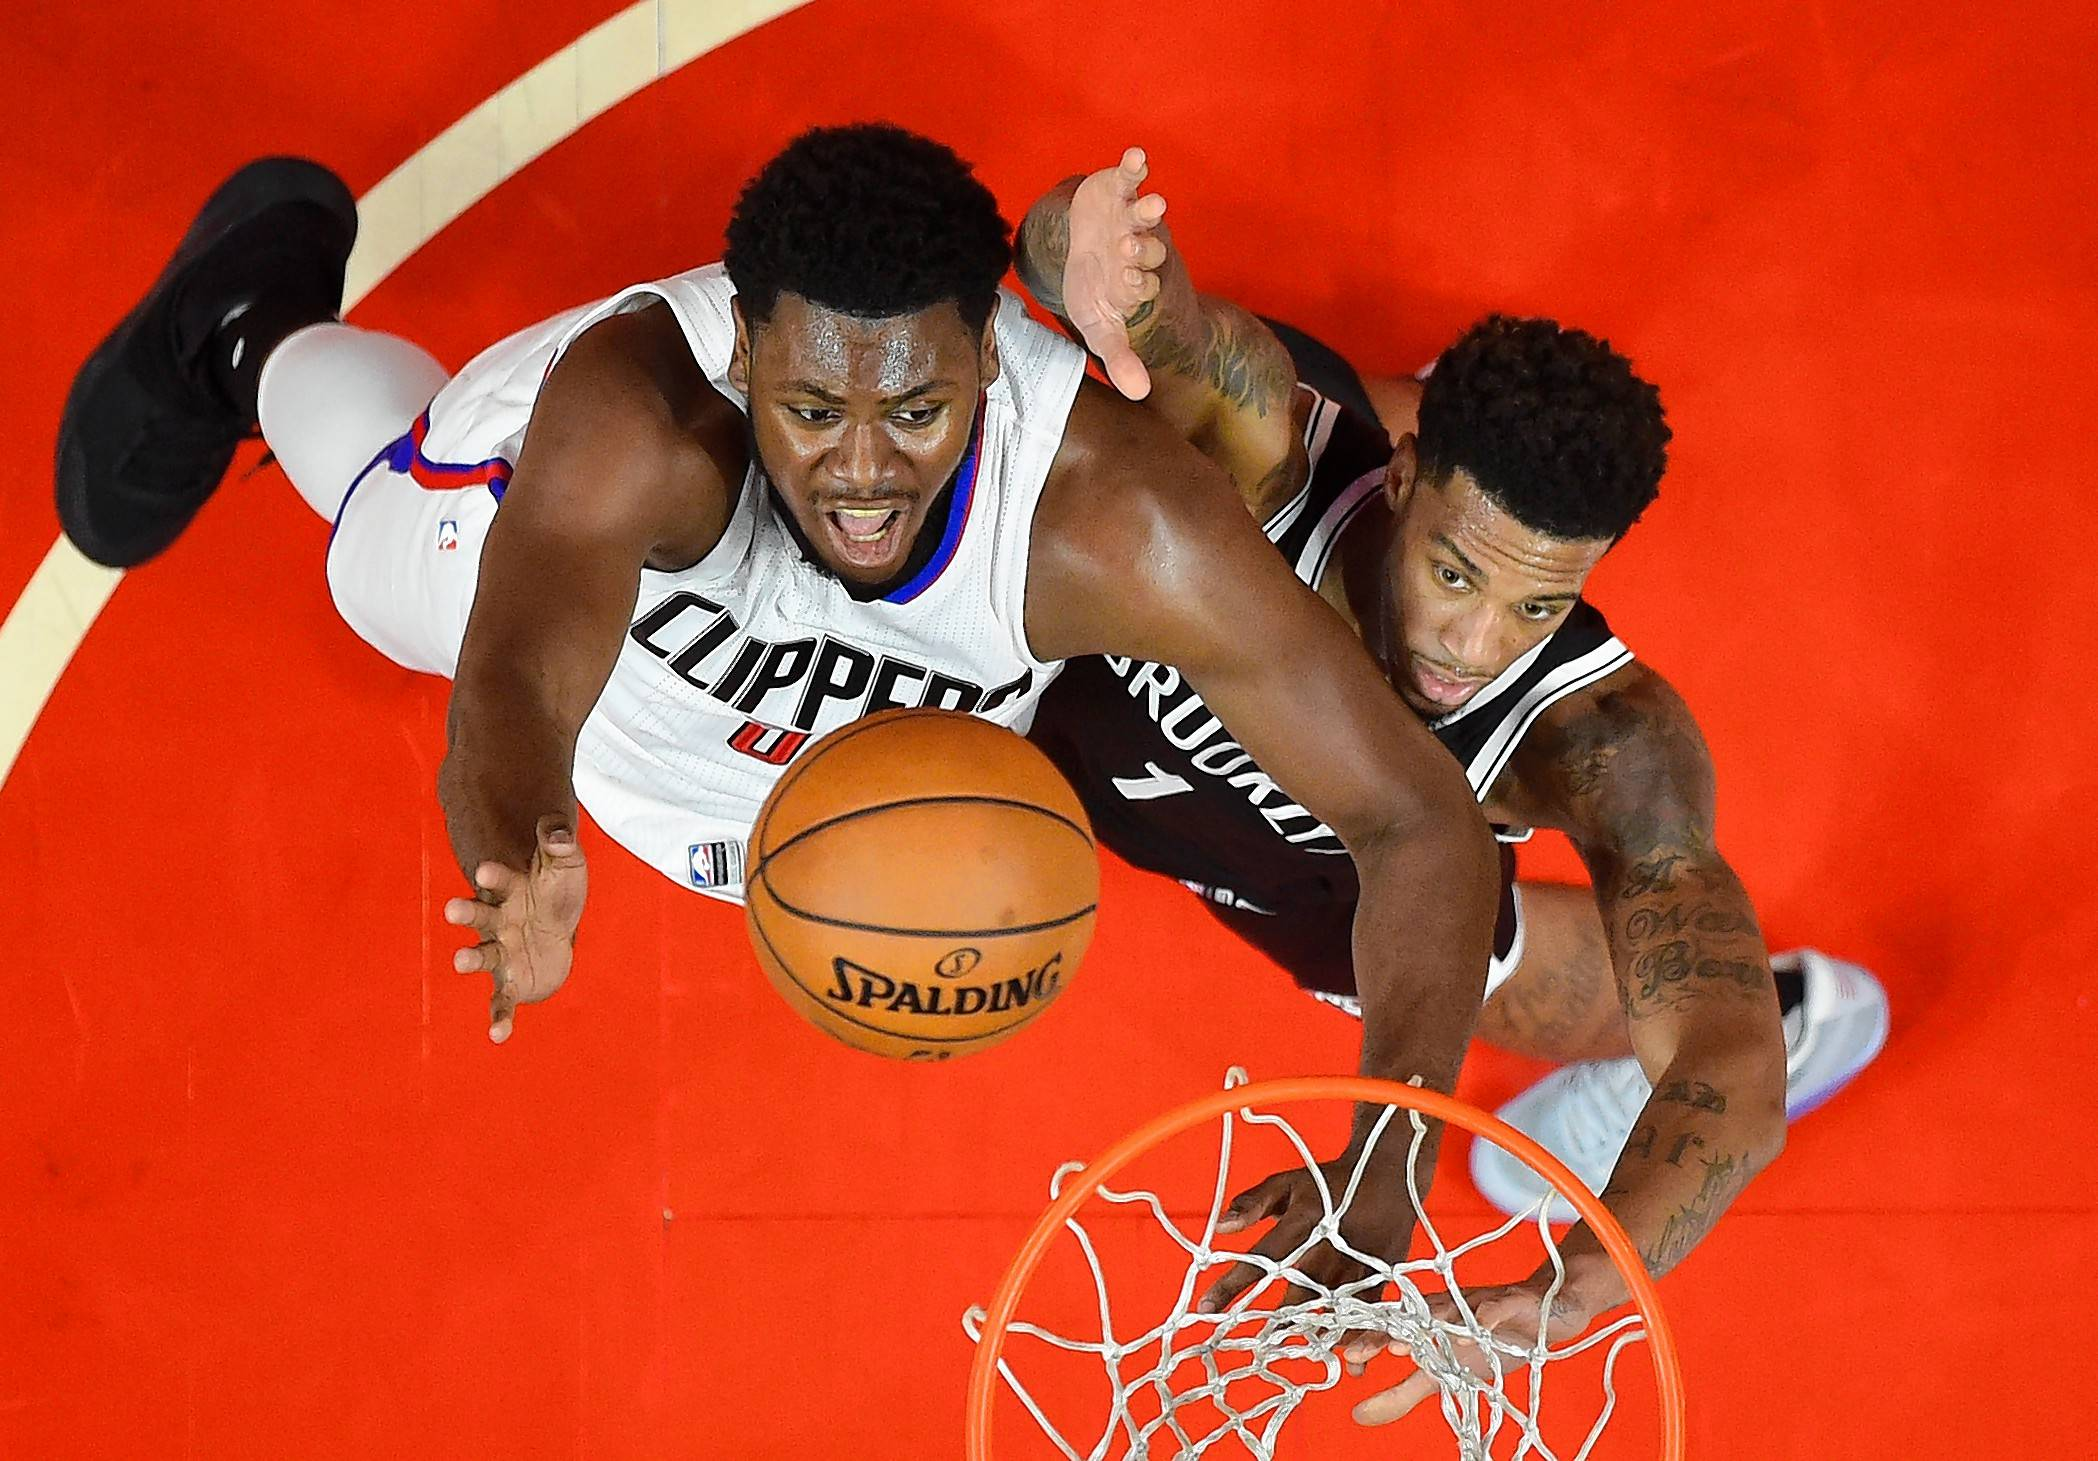 Former Los Angeles Clippers center Diamond Stone, left, has signed a contract with the Chicago Bulls, who likely will try to develop him on their G-League team, the Windy City Bulls.